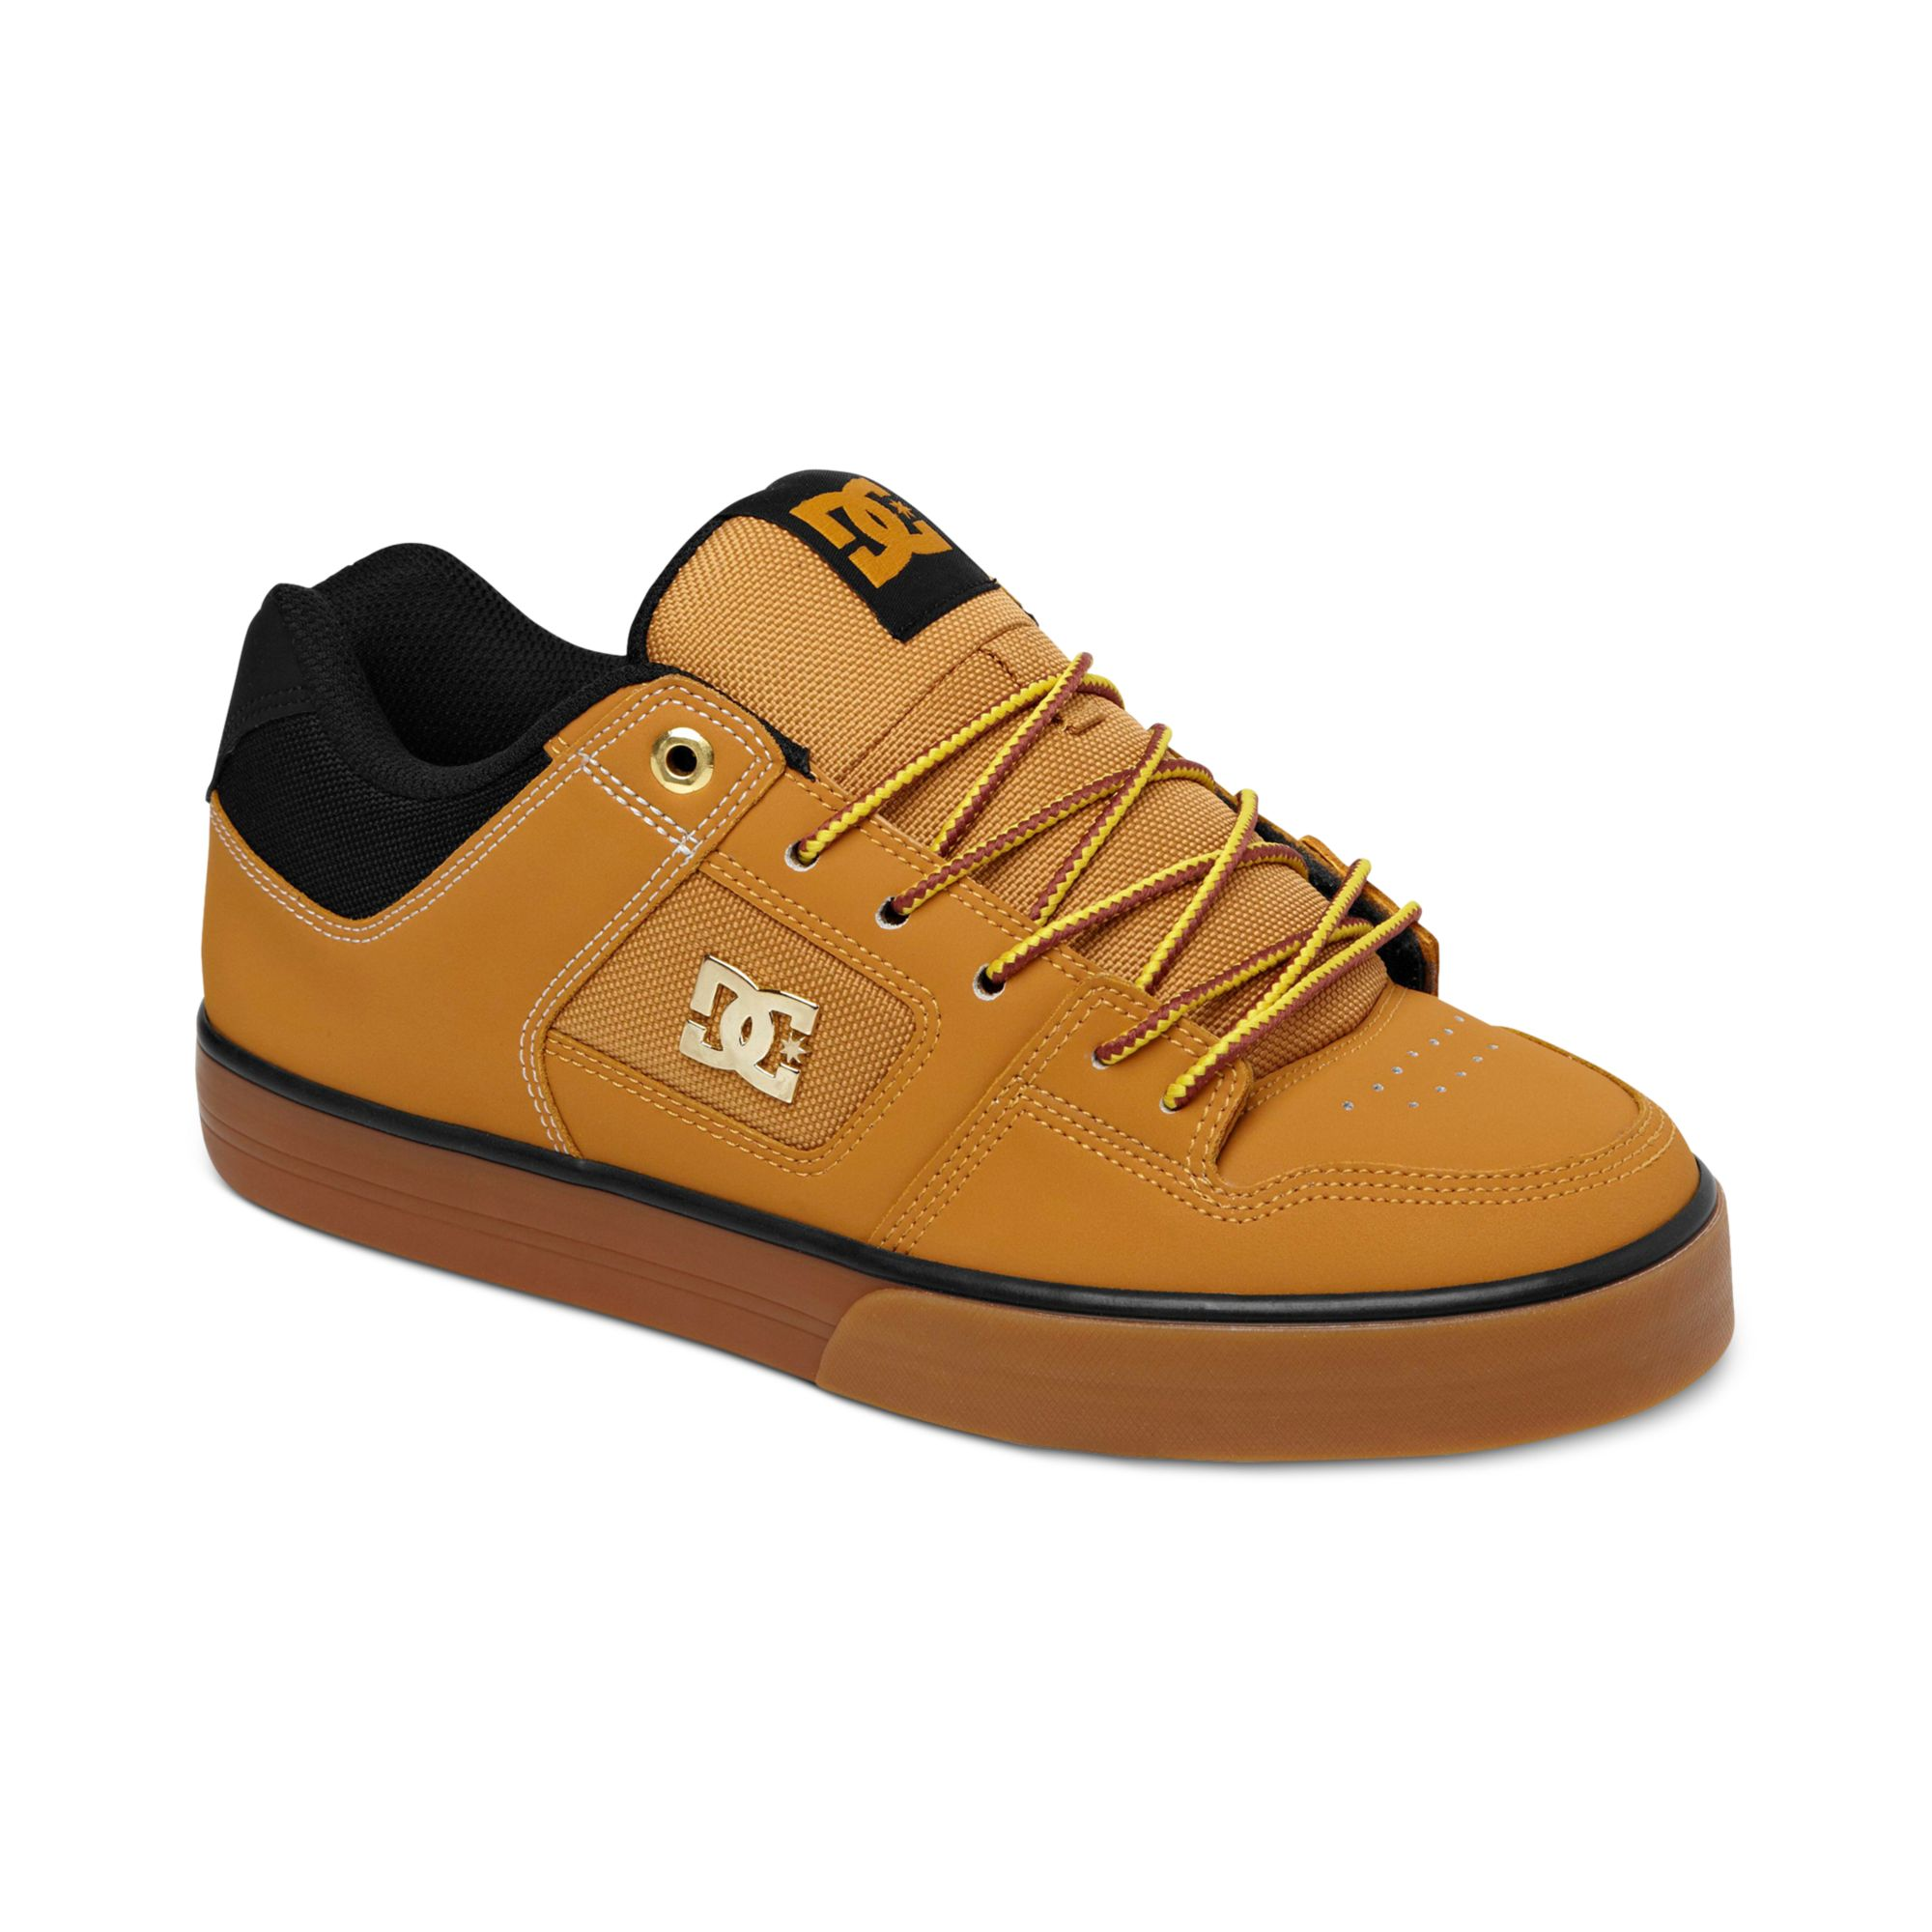 21c518a90f9 Lyst - DC Shoes Sneakers in Brown for Men